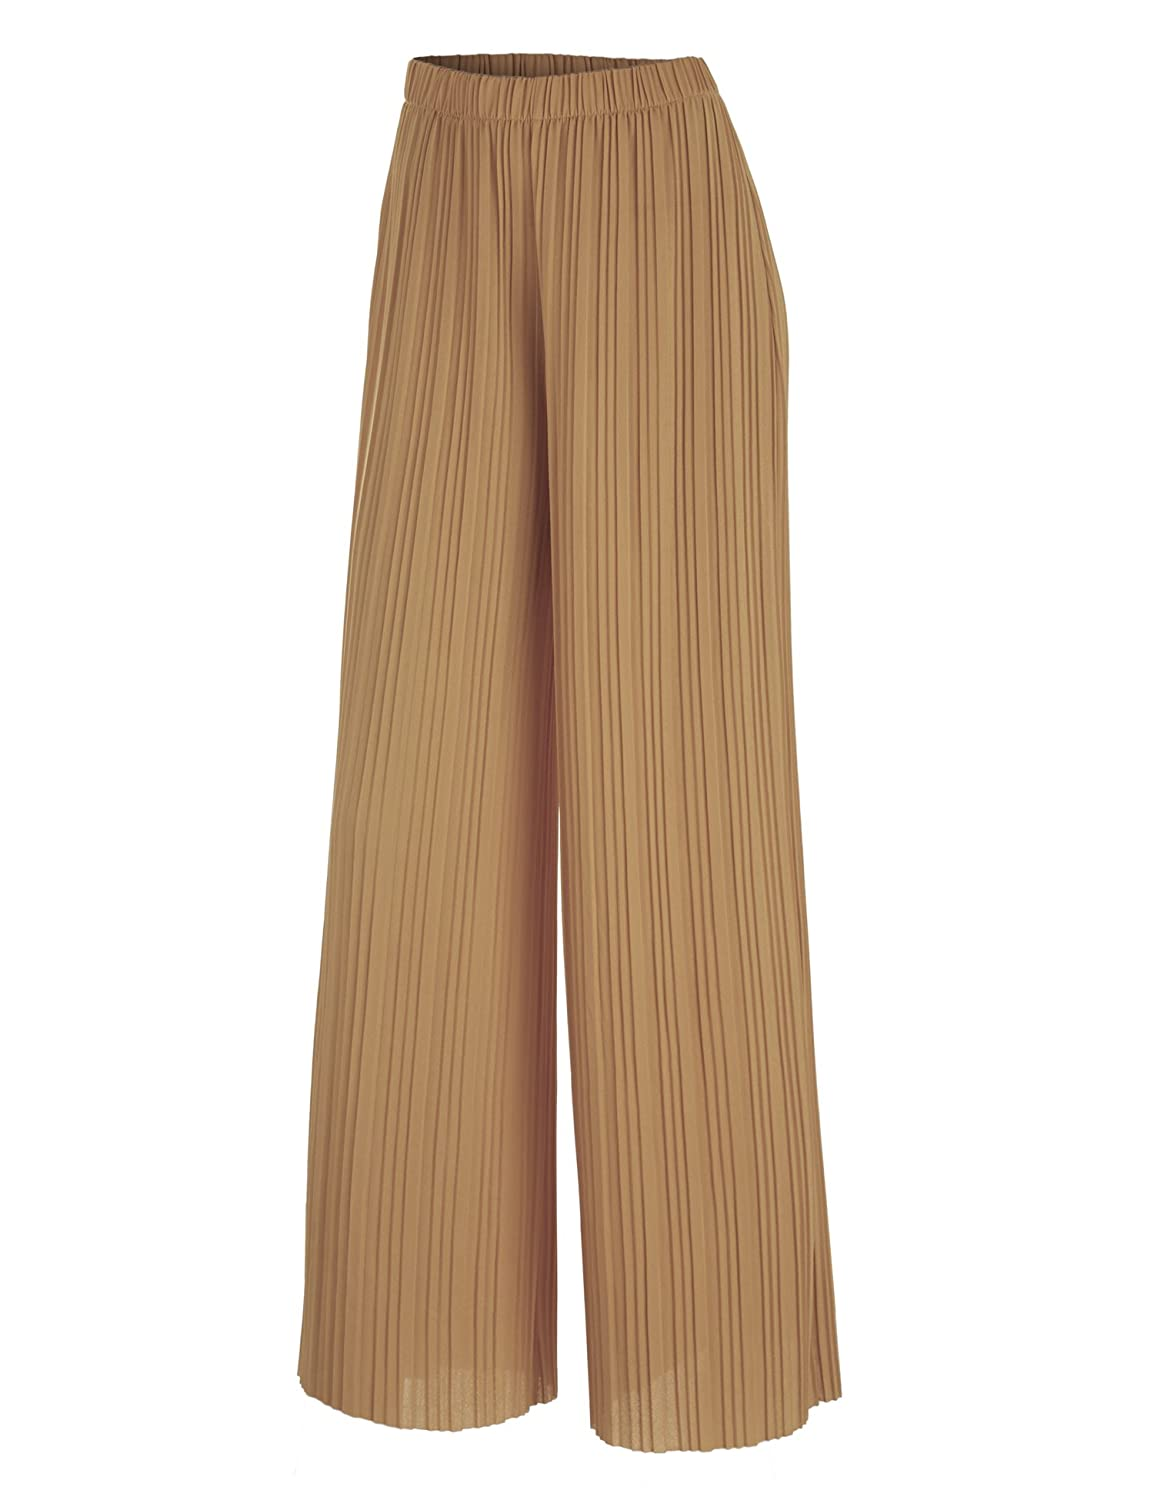 Made By Johnny MBJ Womens Pleated Wide Leg Palazzo Pants with Elastic Band MBJWB1484